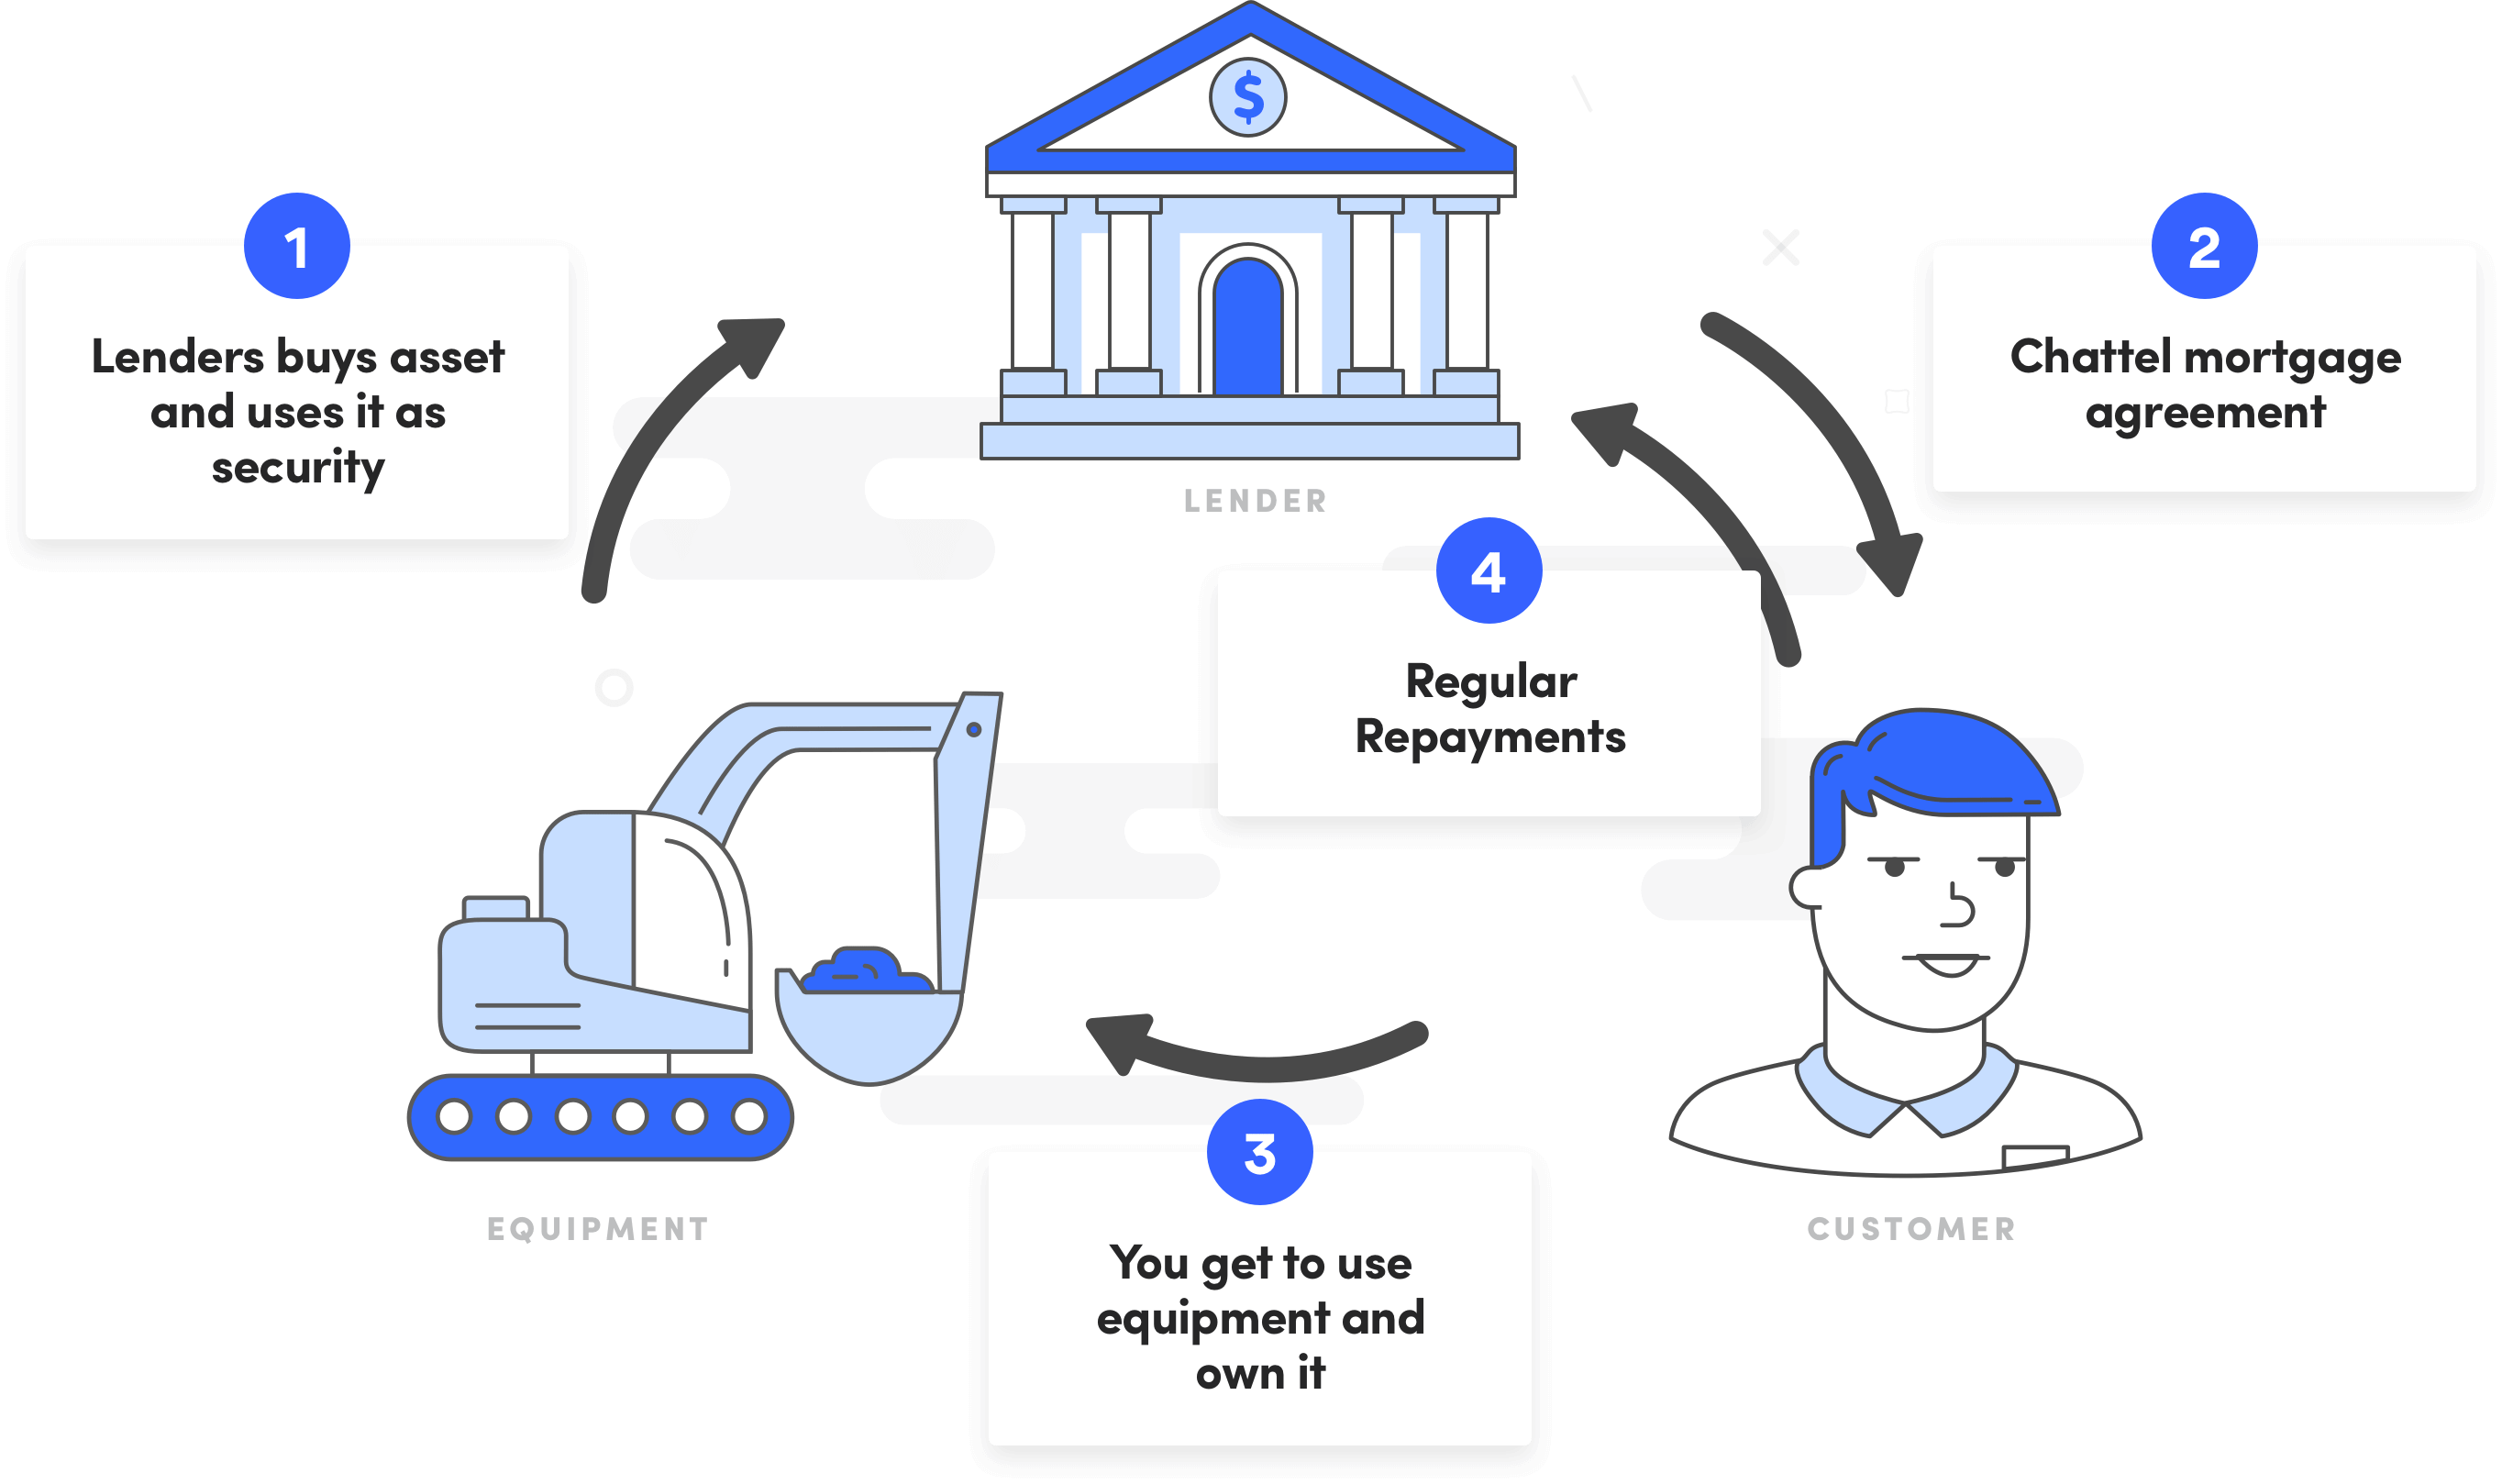 How a Chattel Mortgage Works - Diagram